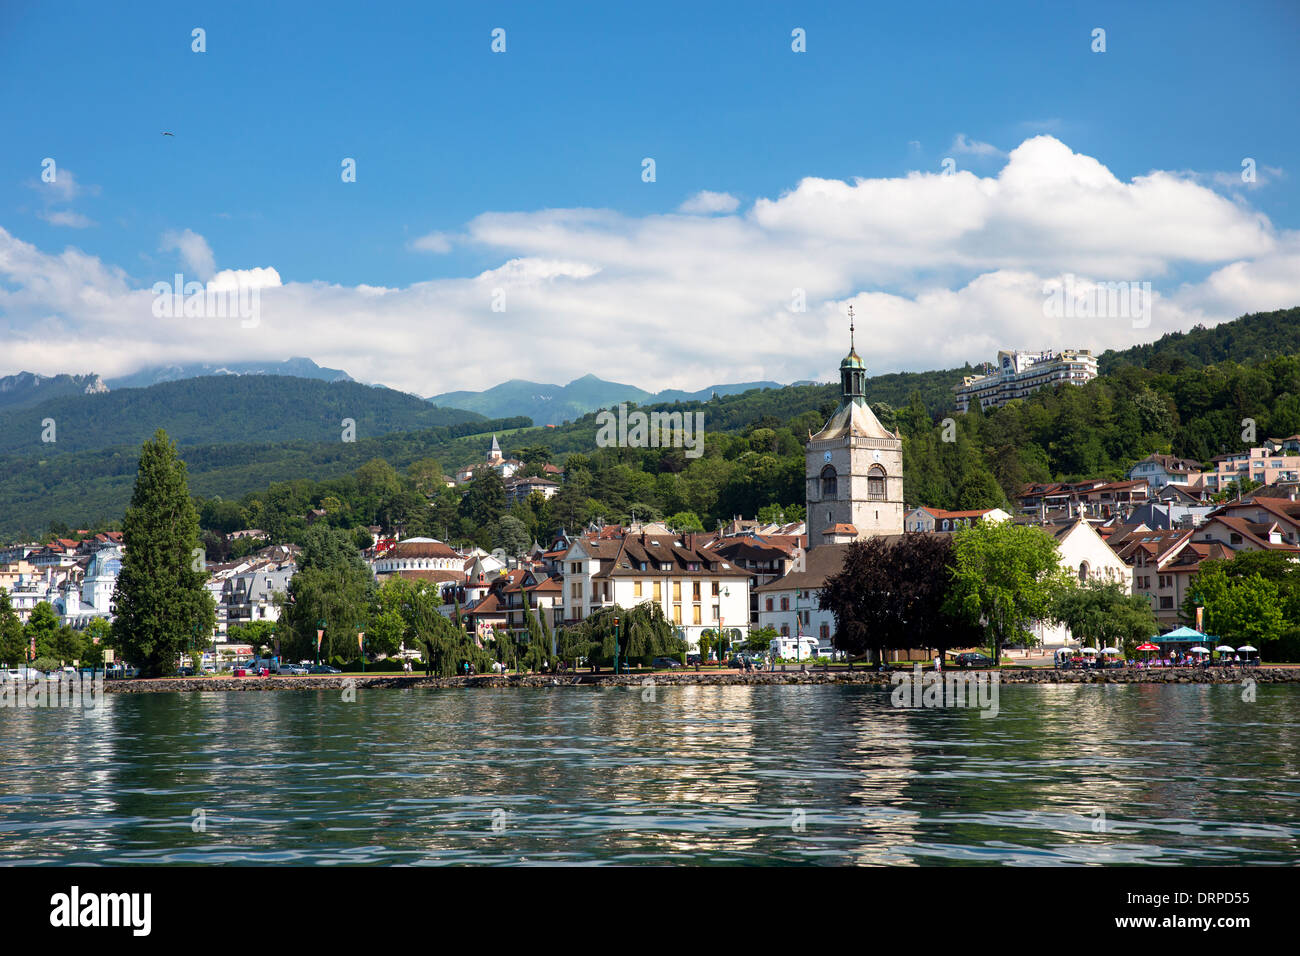 the town and church of evian les bains by lake geneva lac leman stock photo 66261473 alamy. Black Bedroom Furniture Sets. Home Design Ideas